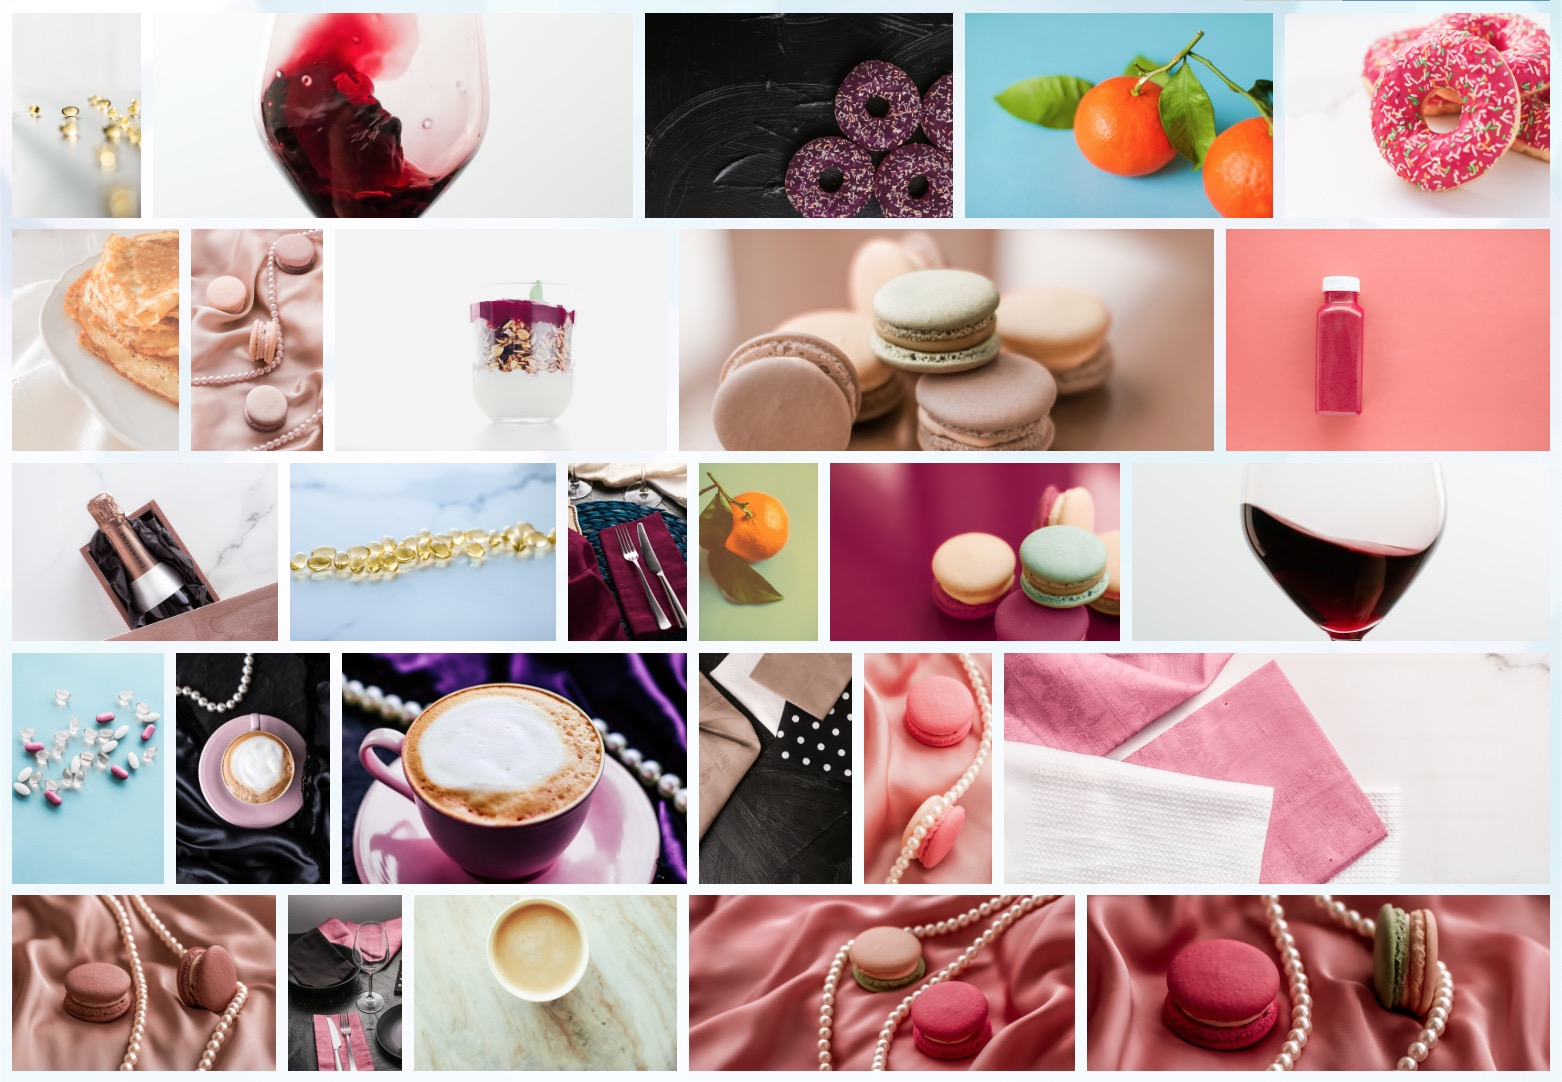 50 Images | Food & Drinks Stock Photo Bundle #1 example image 2